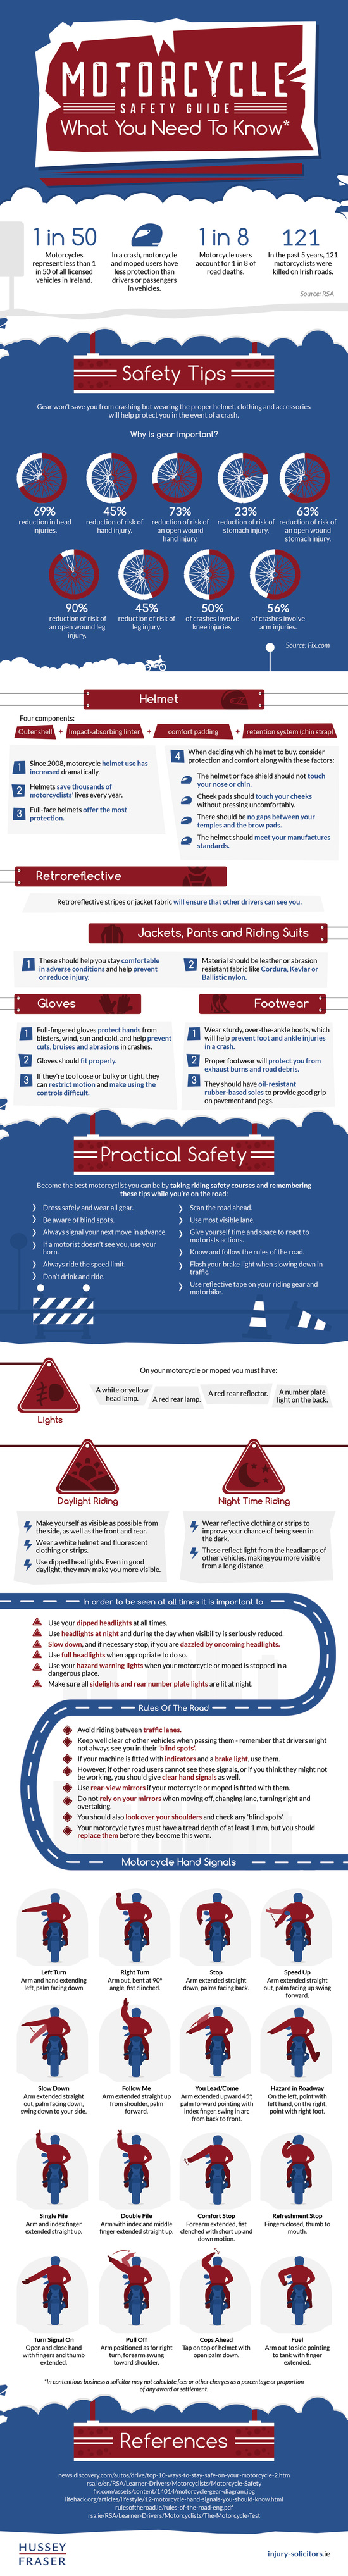 Infographic on Motorcycle Safety